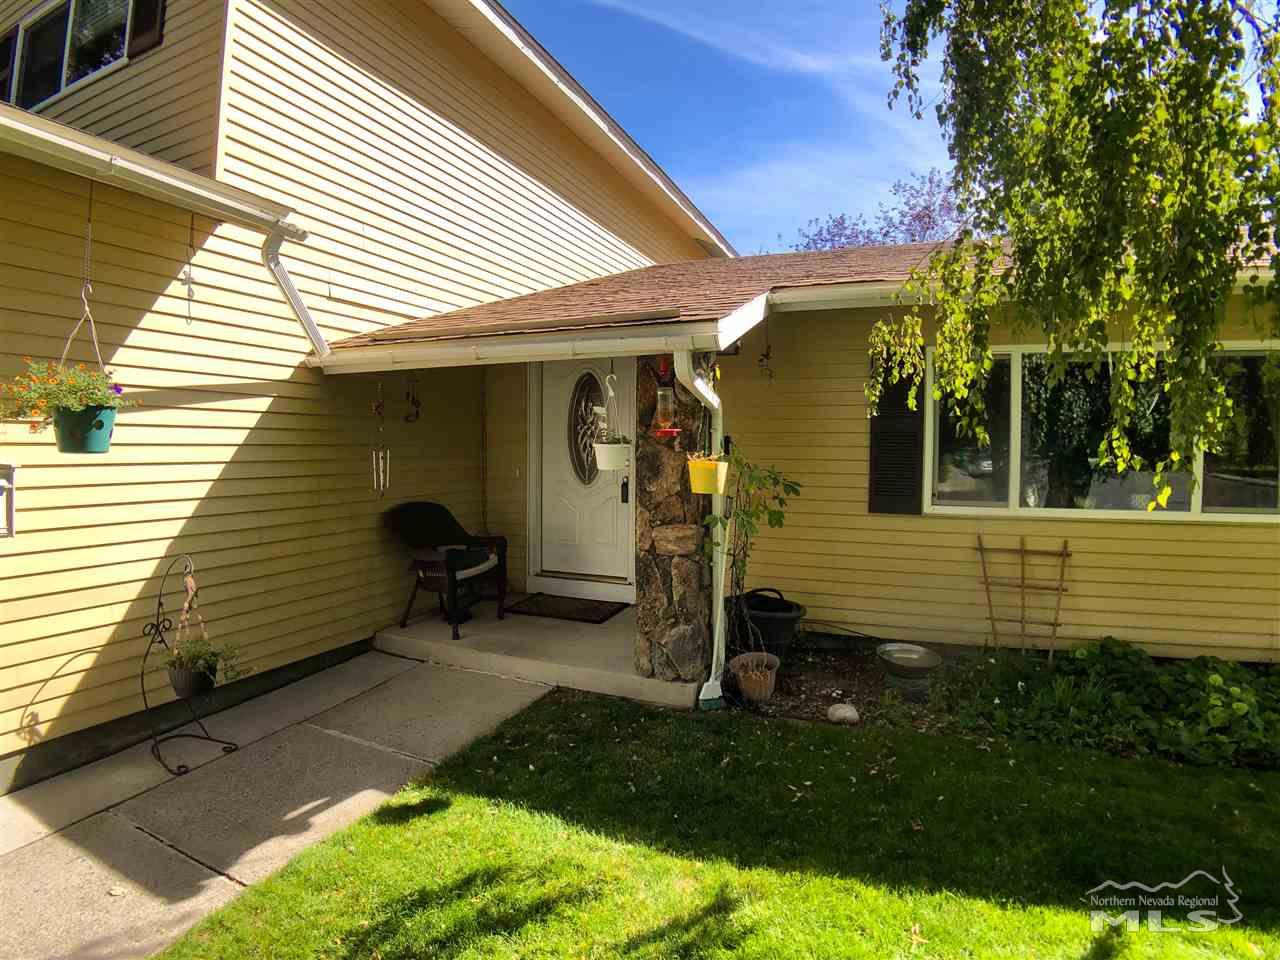 Image for 4210 Billy Dr, Reno, NV 89502